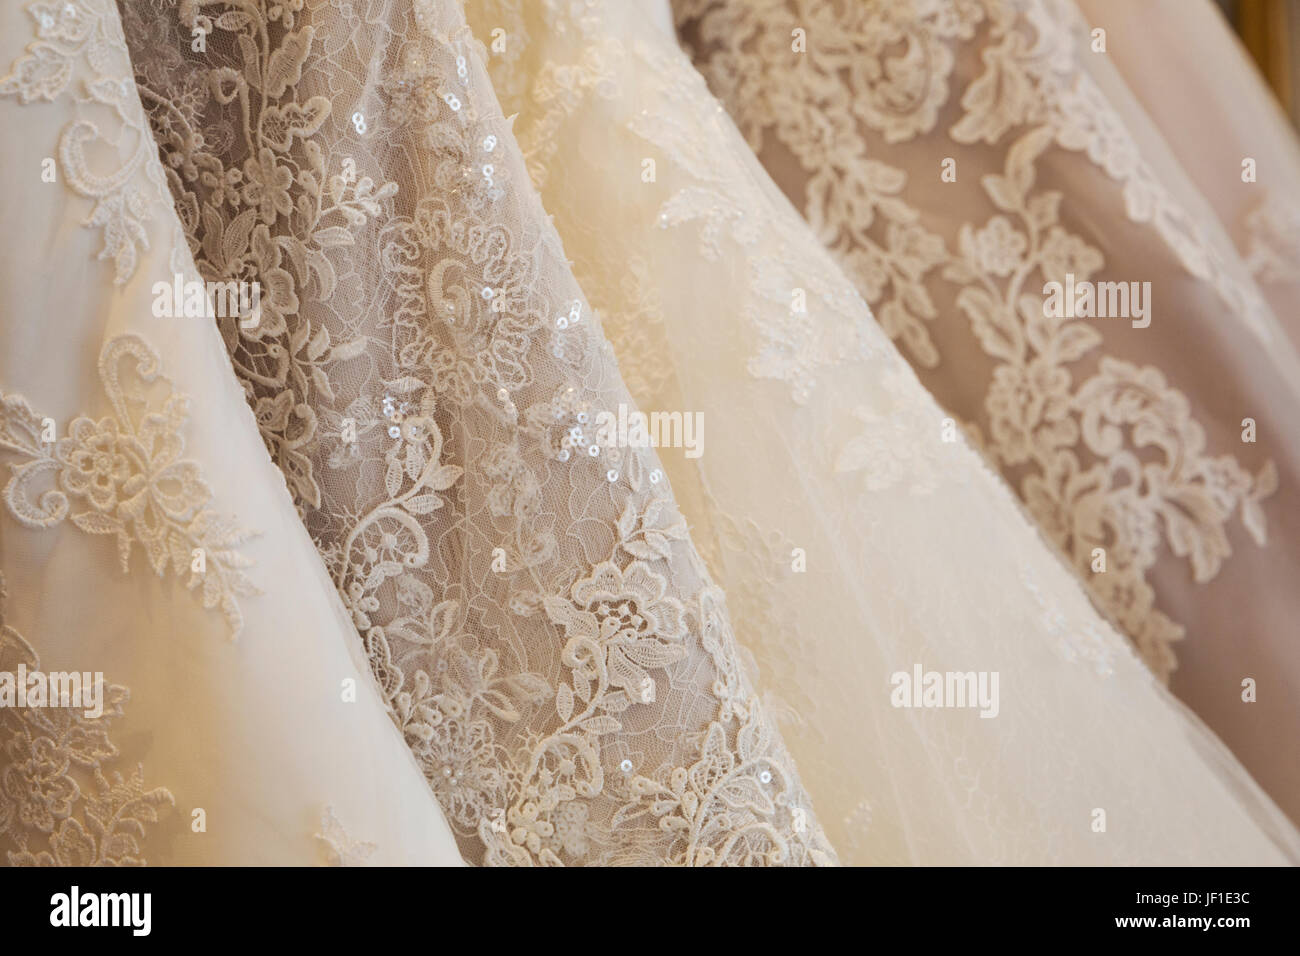 Rows of wedding dresses on display in a specialist wedding dress shop. Close up of full skirts, some with a lace - Stock Image